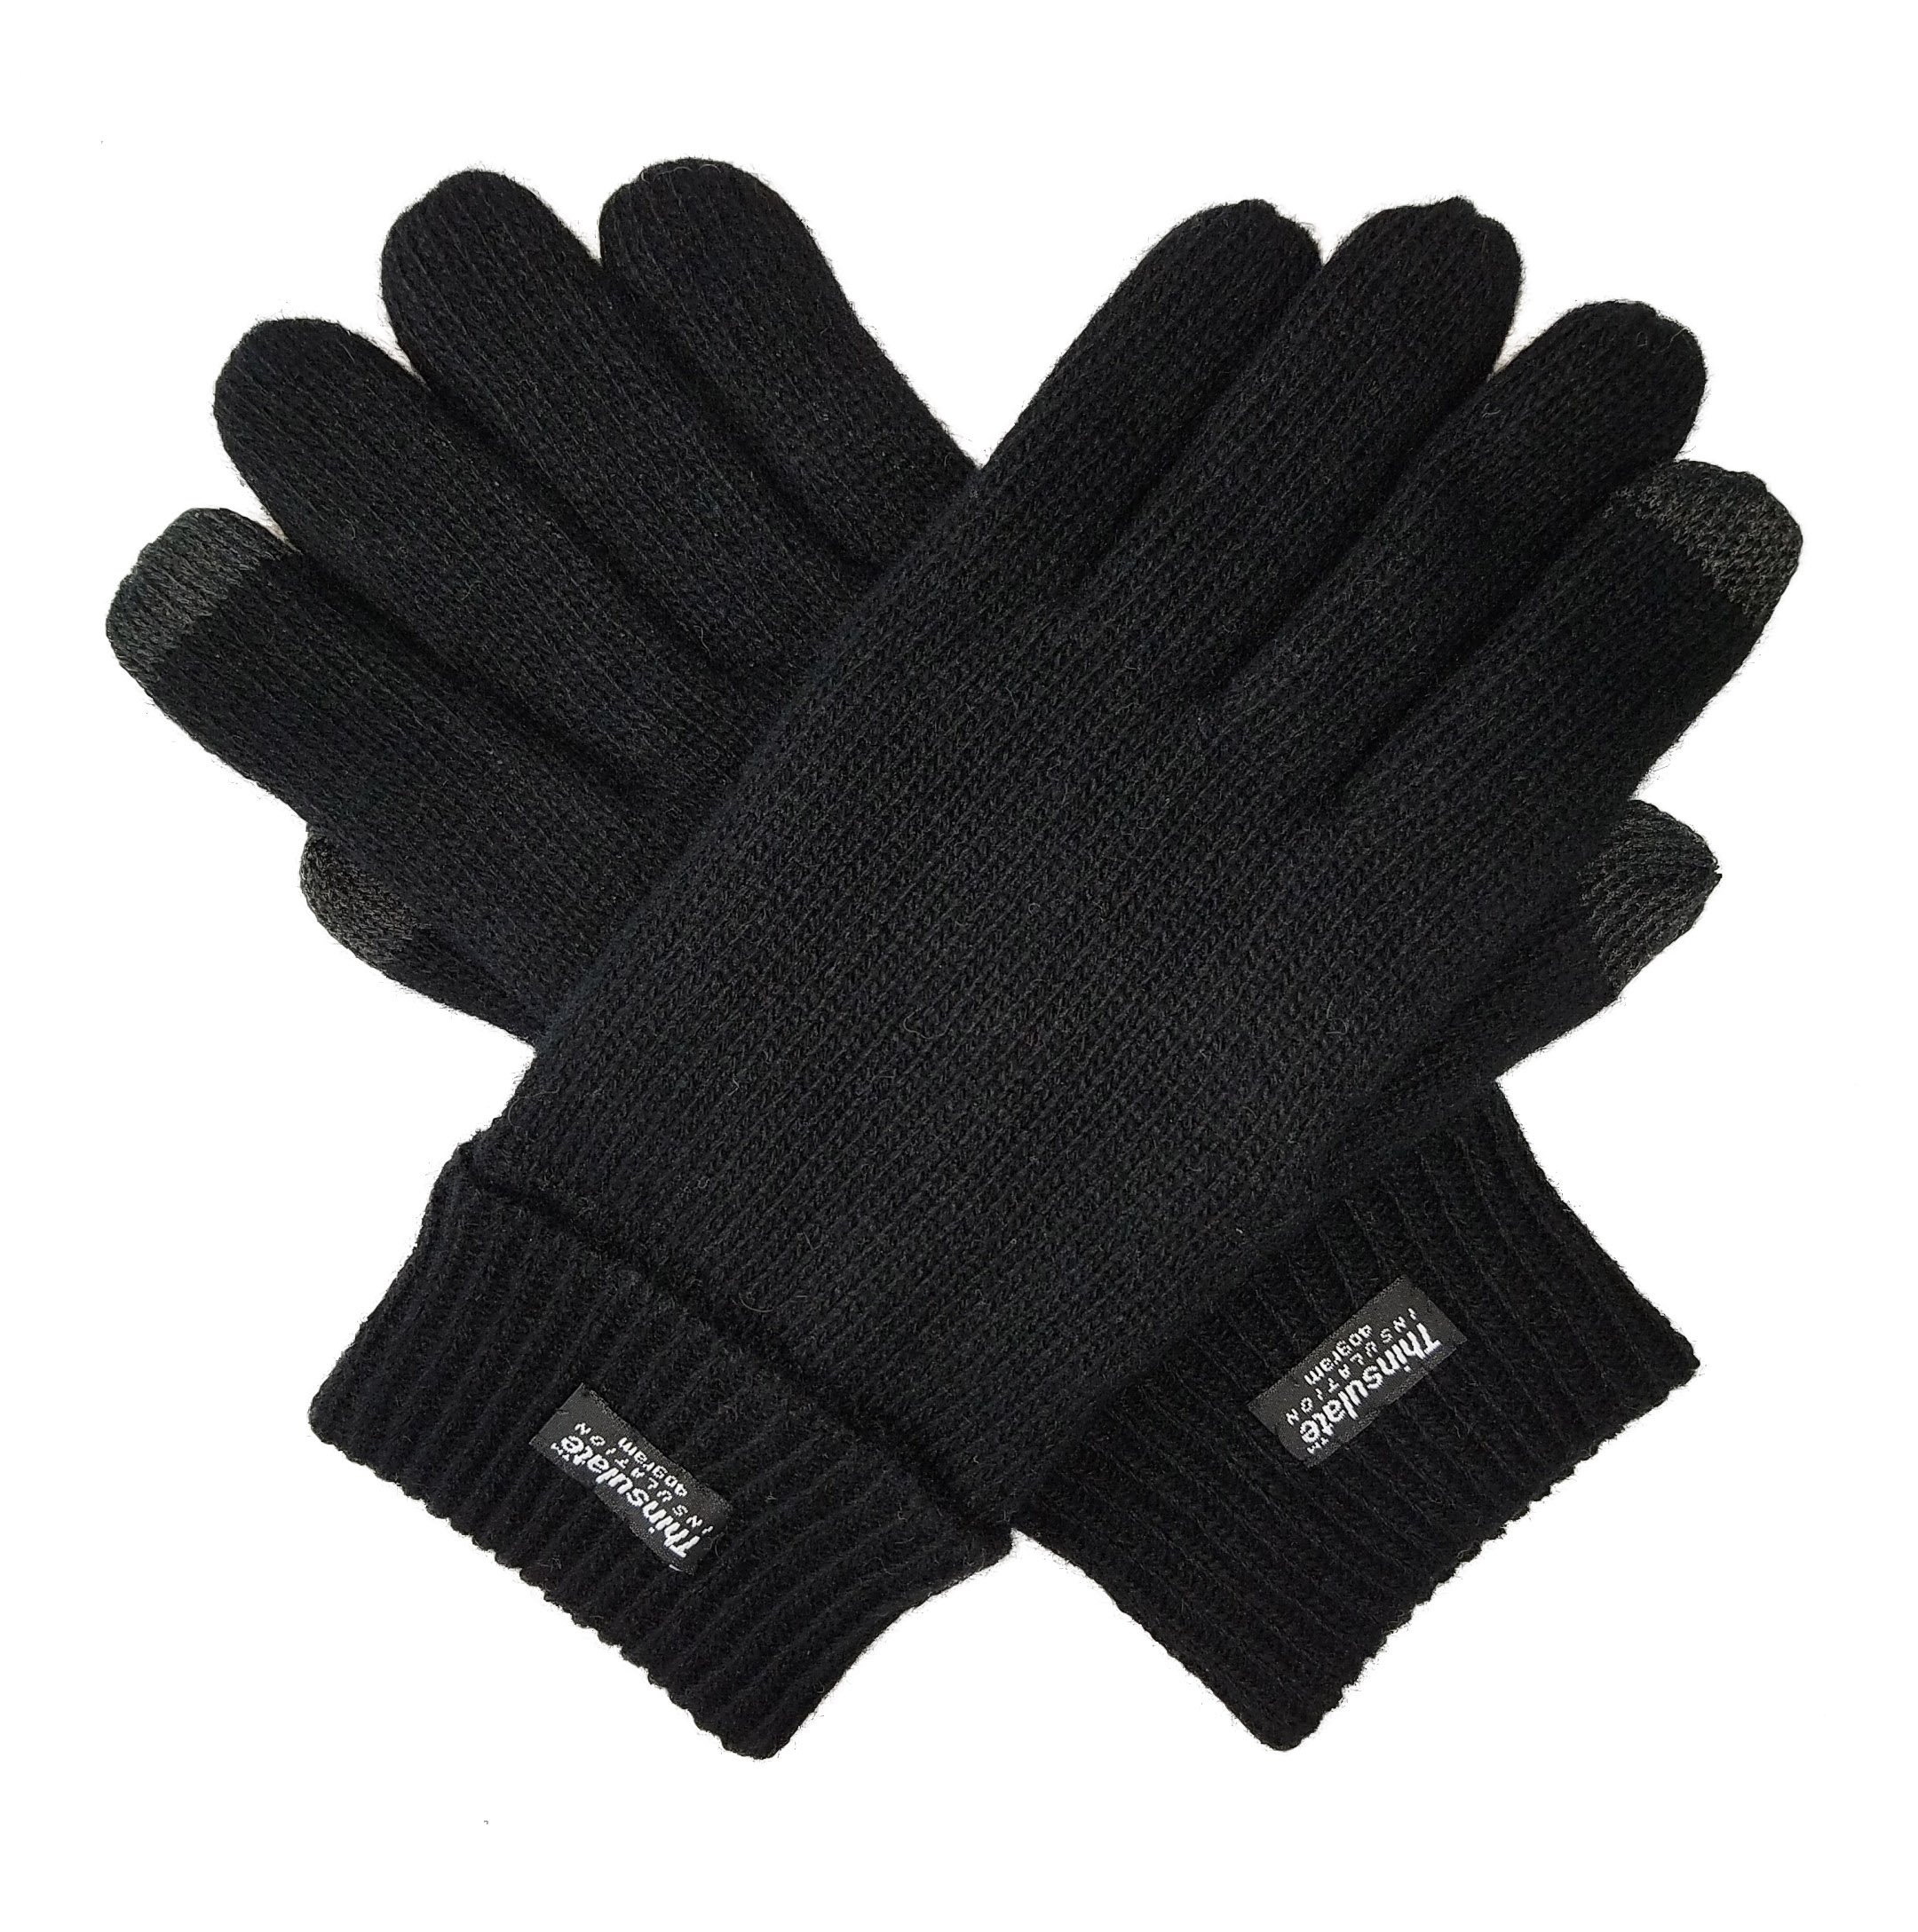 Bruceriver Men's Pure Wool Knitted Touchscreen Gloves with Thinsulate Lining Size L/XL (Black Touchscreen)